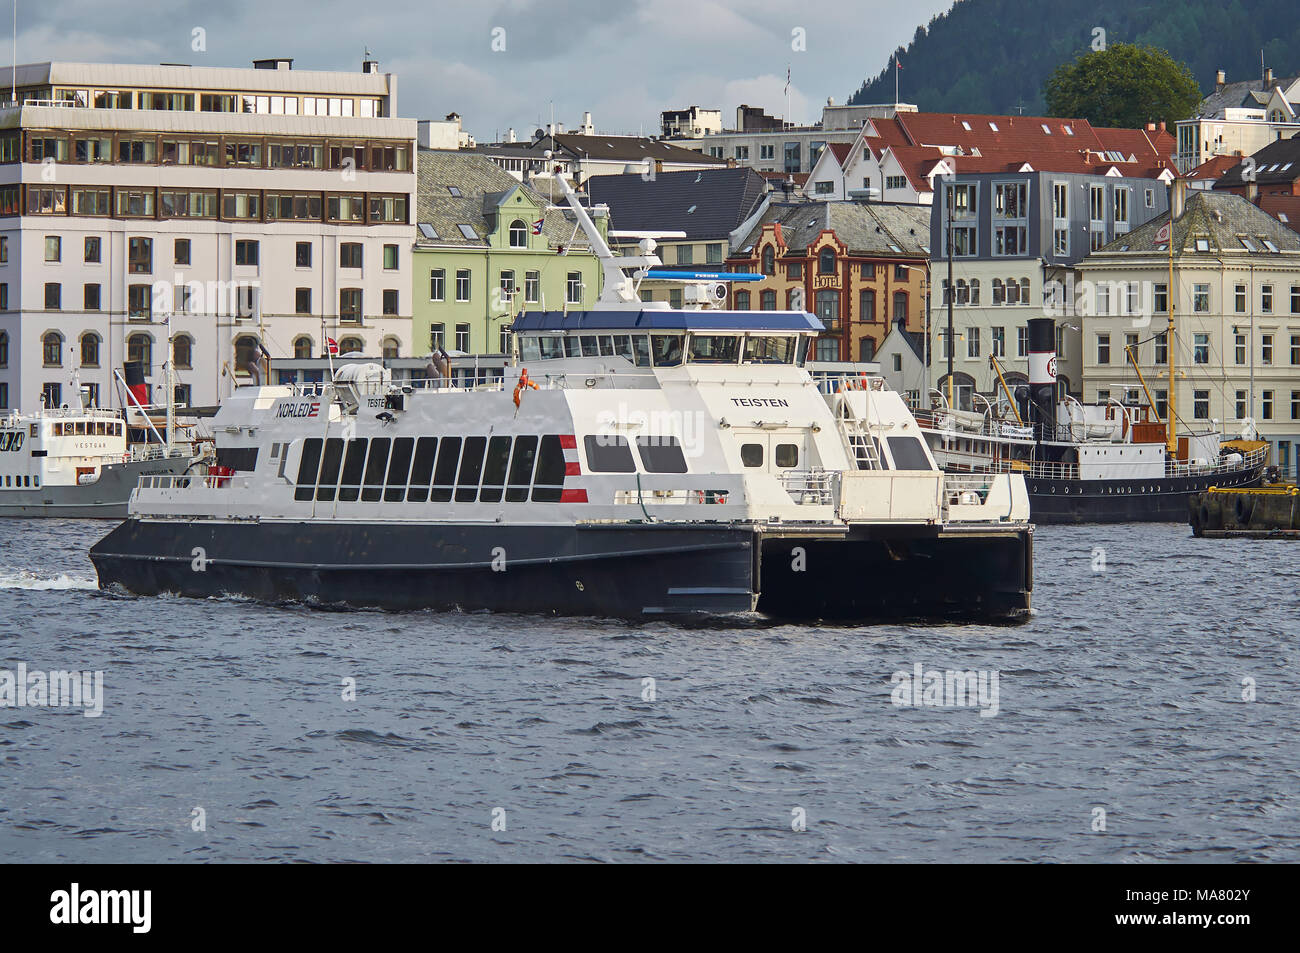 One of the small Coastal Passenger Ferries, The Teisten, makes its way out of Bergen full of passengers for one of its Coastal Stops - Stock Image